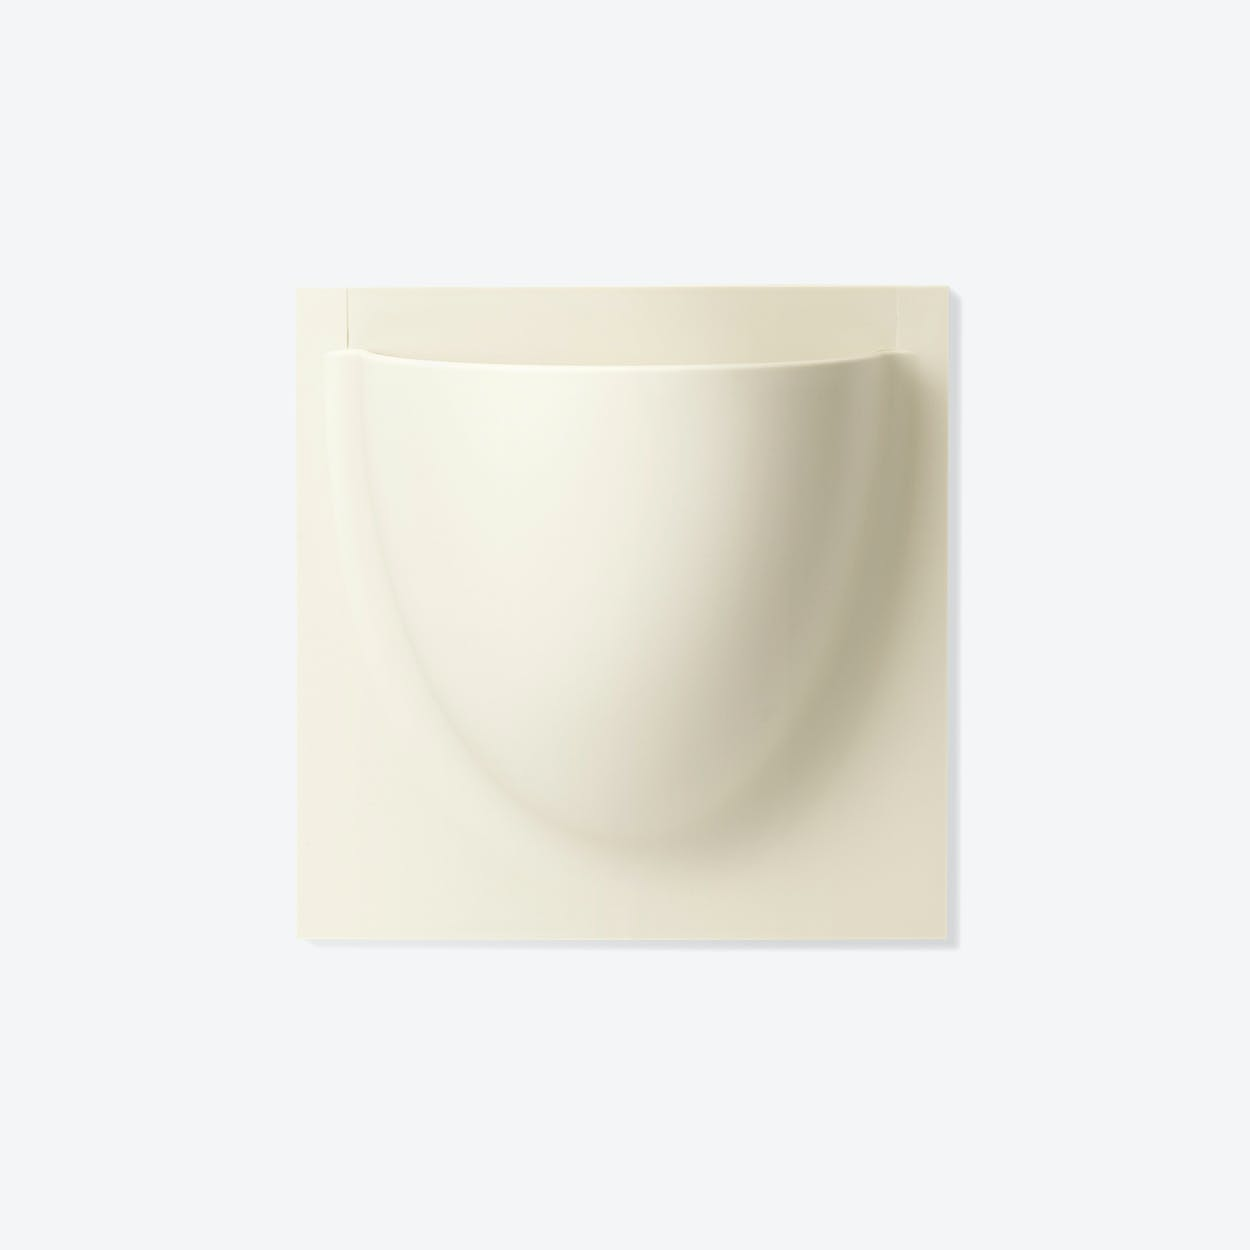 Wall Planter / Jar Mini in Oyster White (Set of 2)